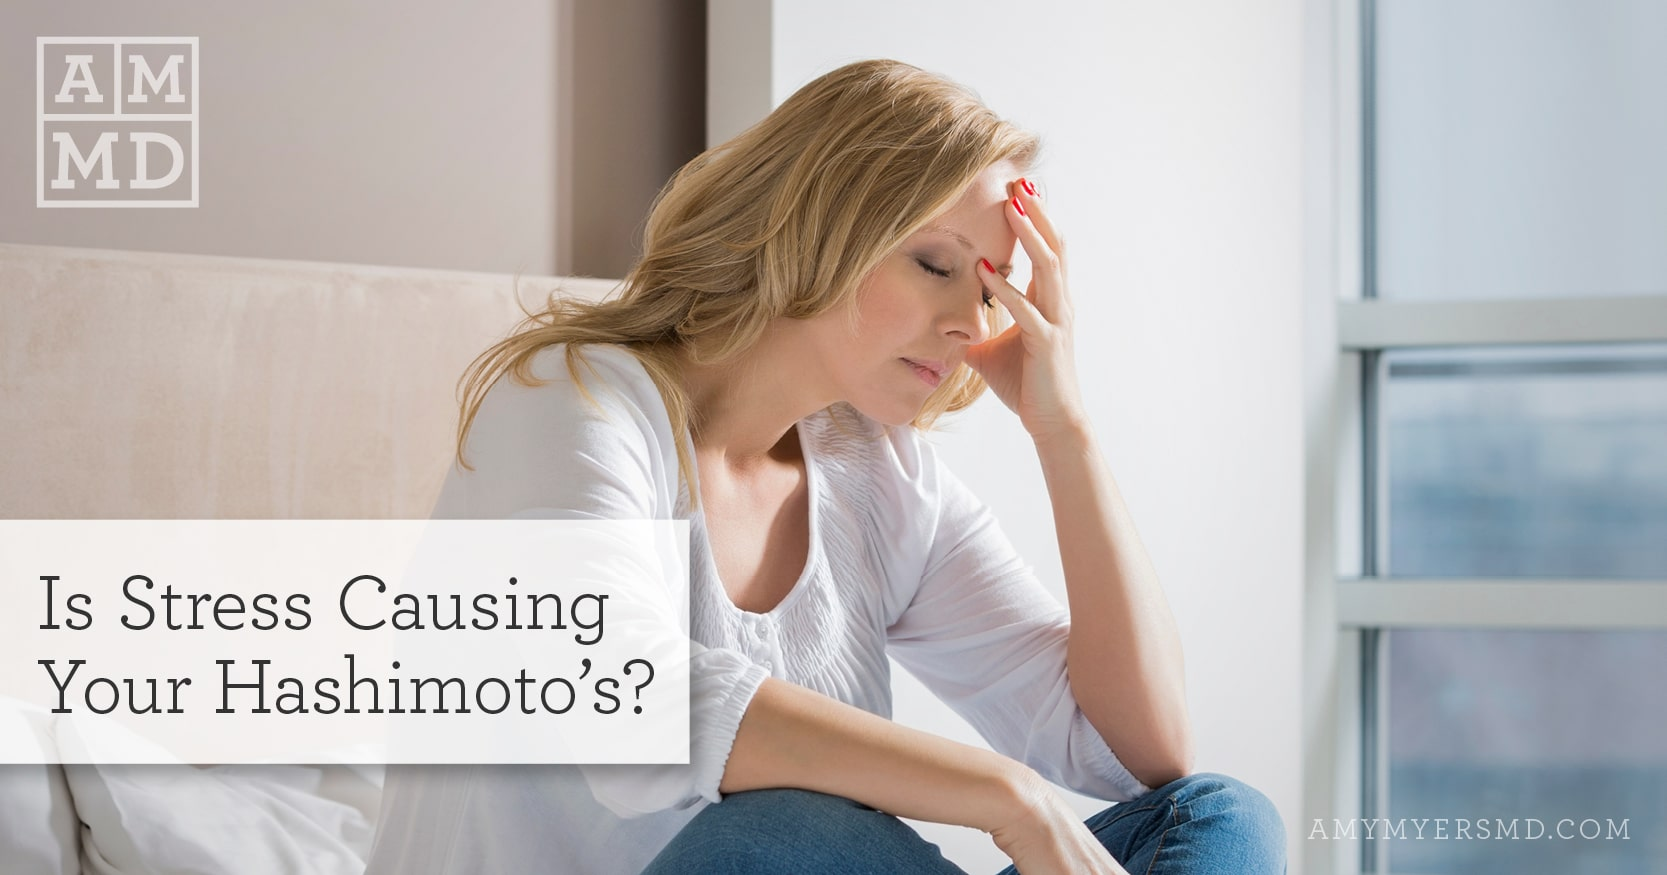 Is Stress Causing Your Hashimoto's - Woman Under Stress - Featured Image - Amy Myers MD